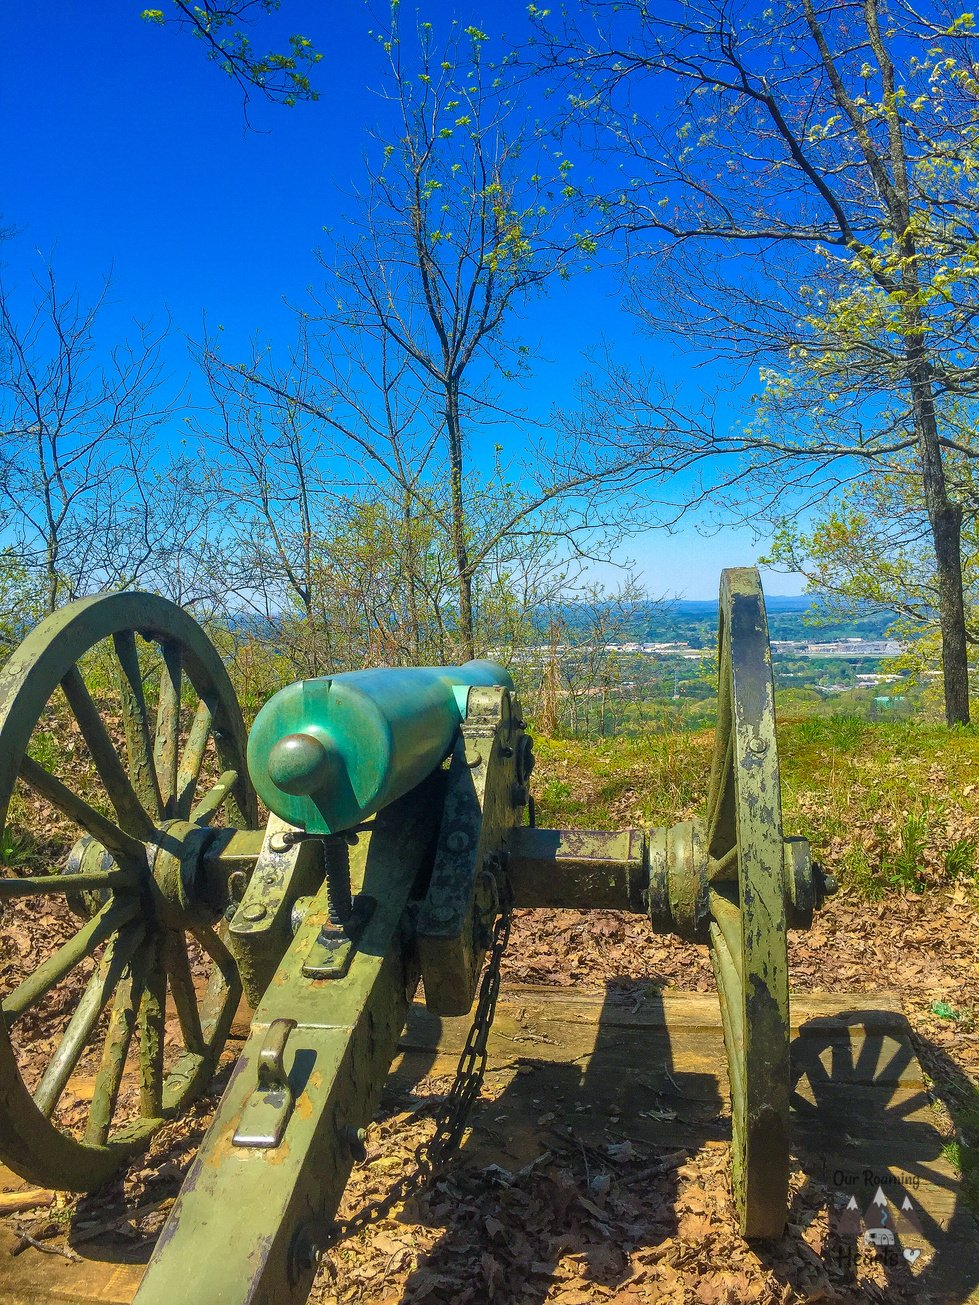 Kennesaw Mountain National Battlefield - Operation Staycation Atlanta